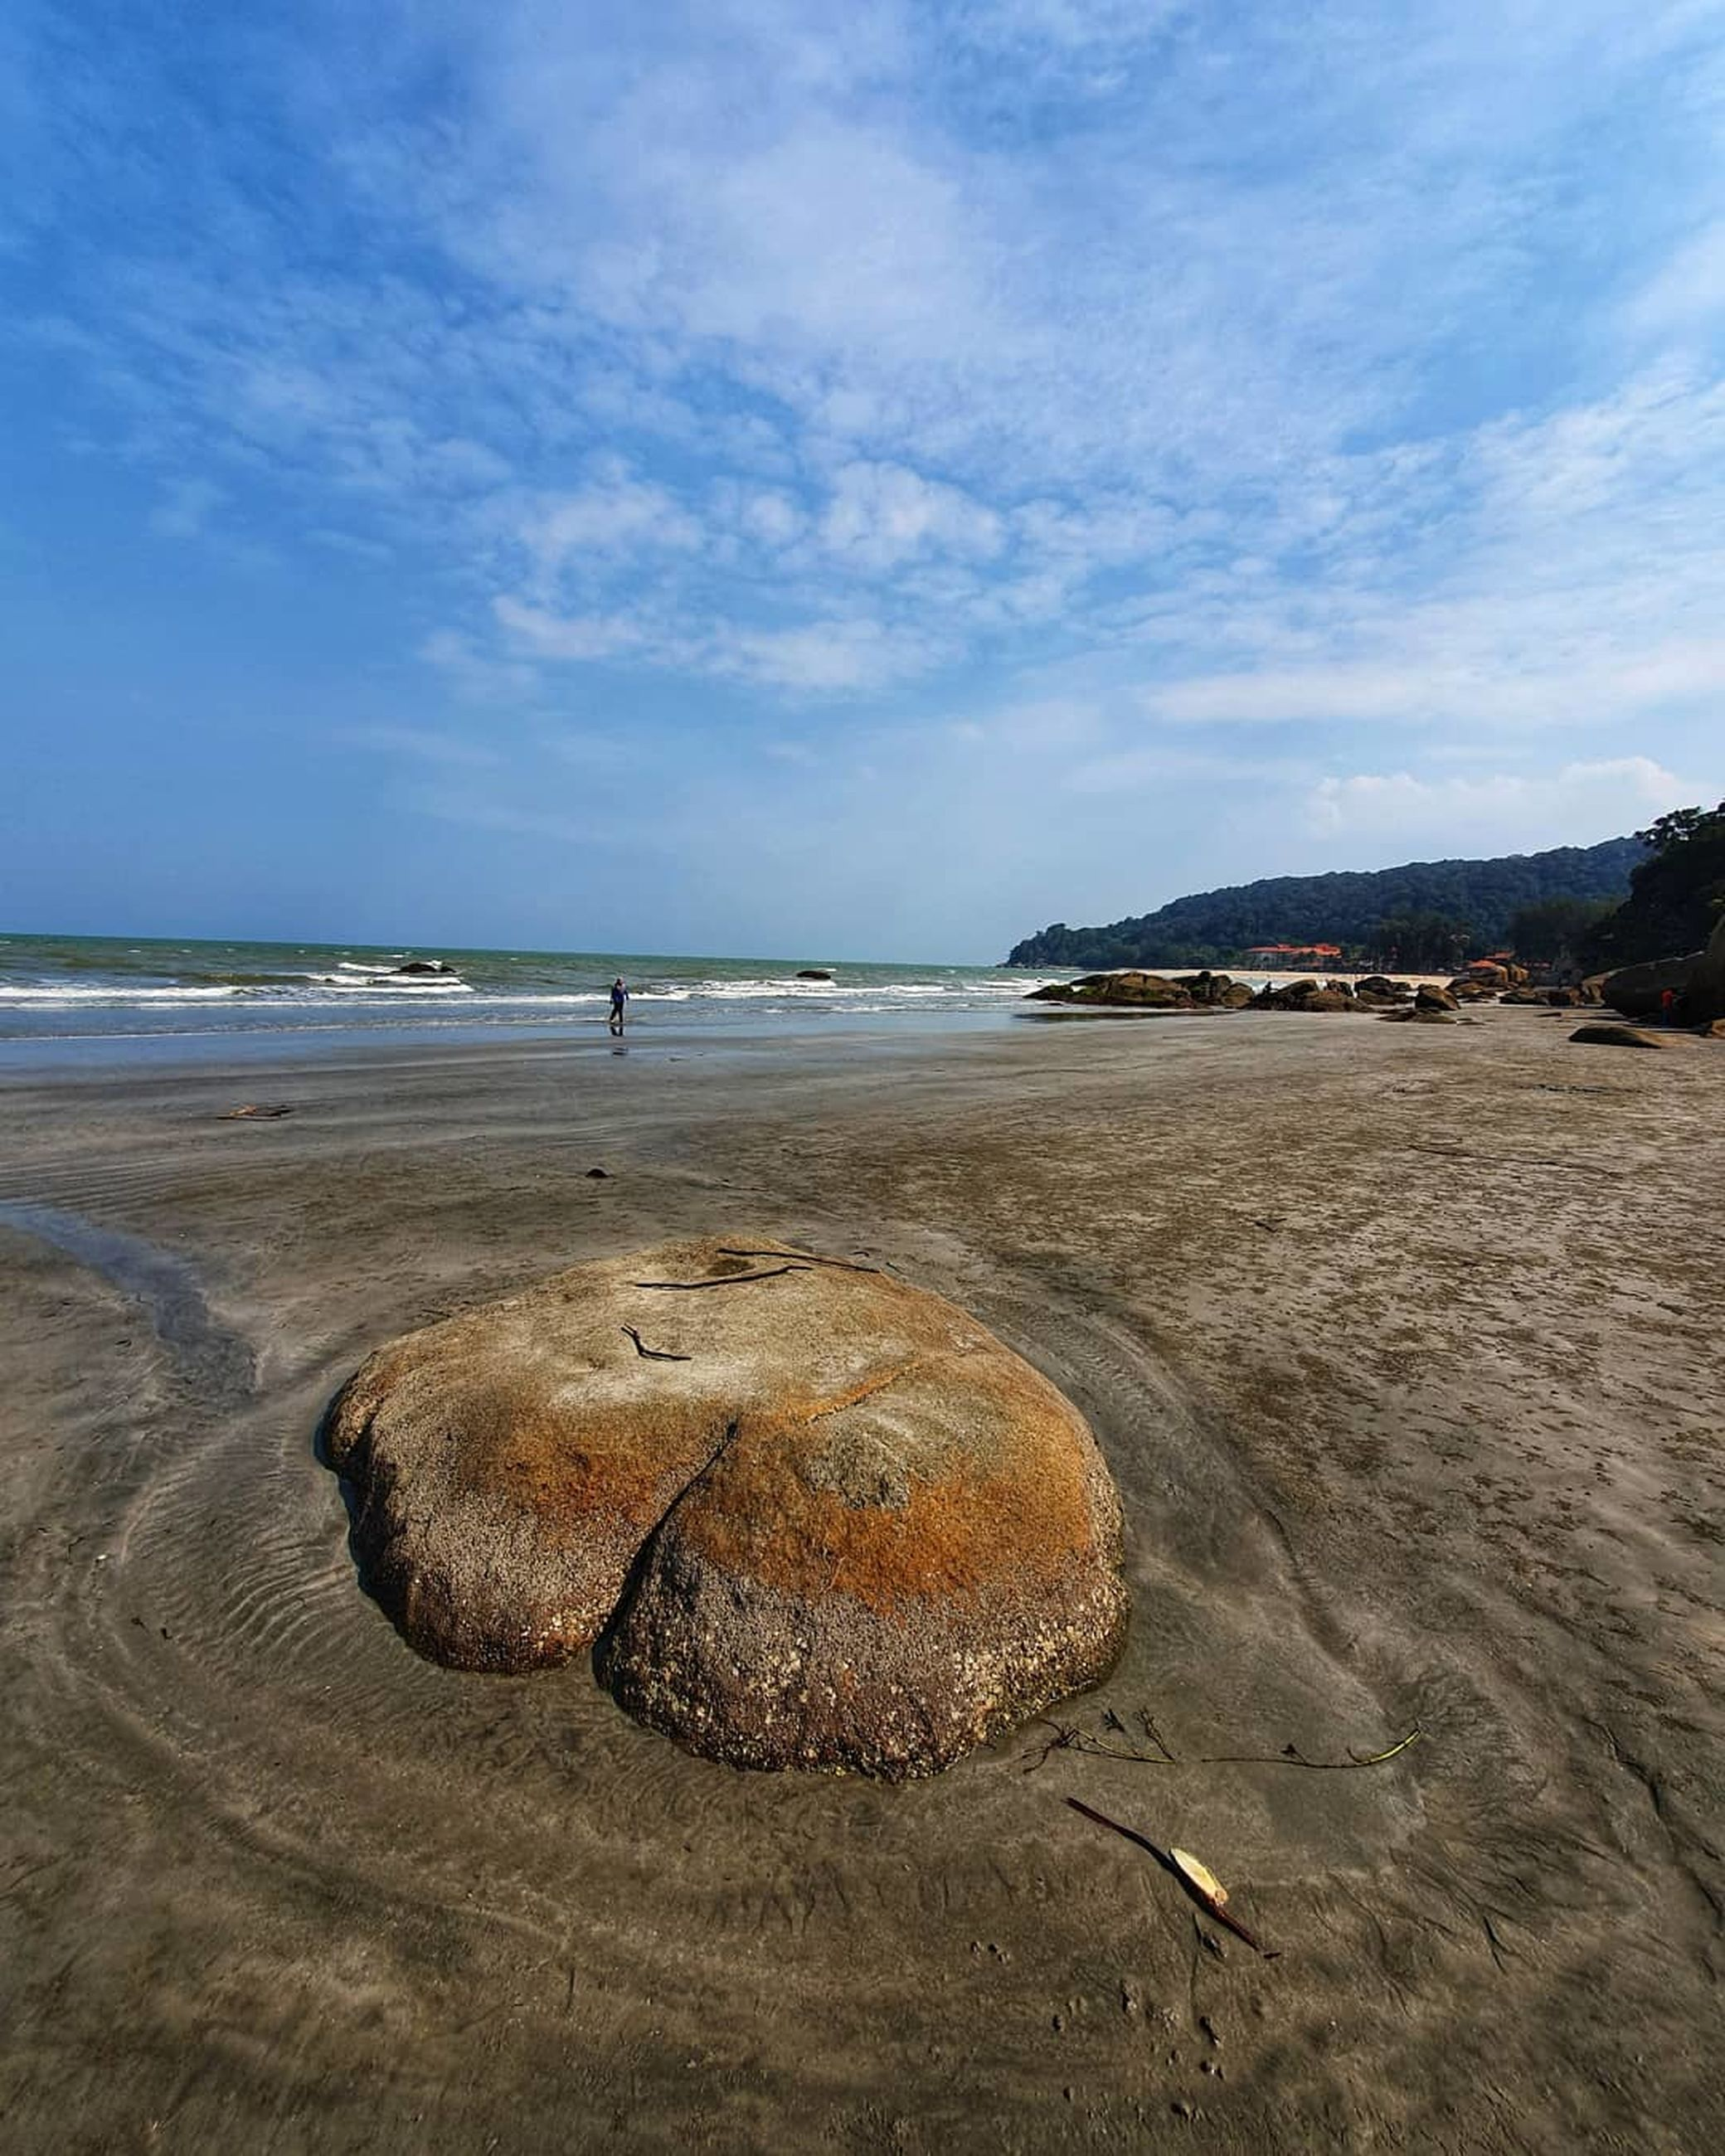 sea, water, beach, sky, land, beauty in nature, scenics - nature, tranquility, cloud - sky, nature, tranquil scene, rock, horizon over water, solid, sand, day, horizon, rock - object, non-urban scene, no people, outdoors